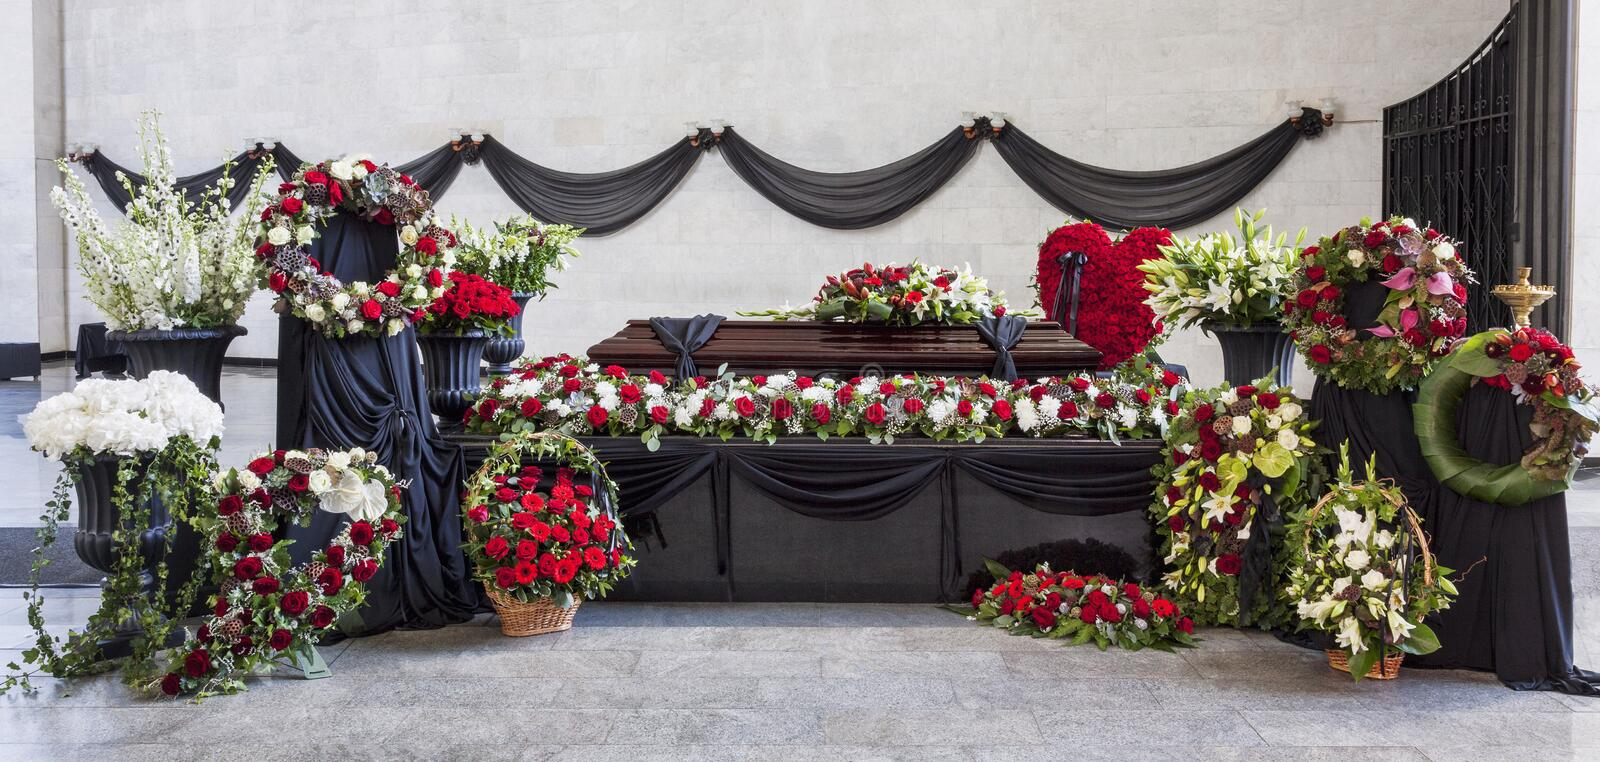 Funeral, coffin, decorated with wreaths, in the farewell hall, panorama. royalty free stock photography